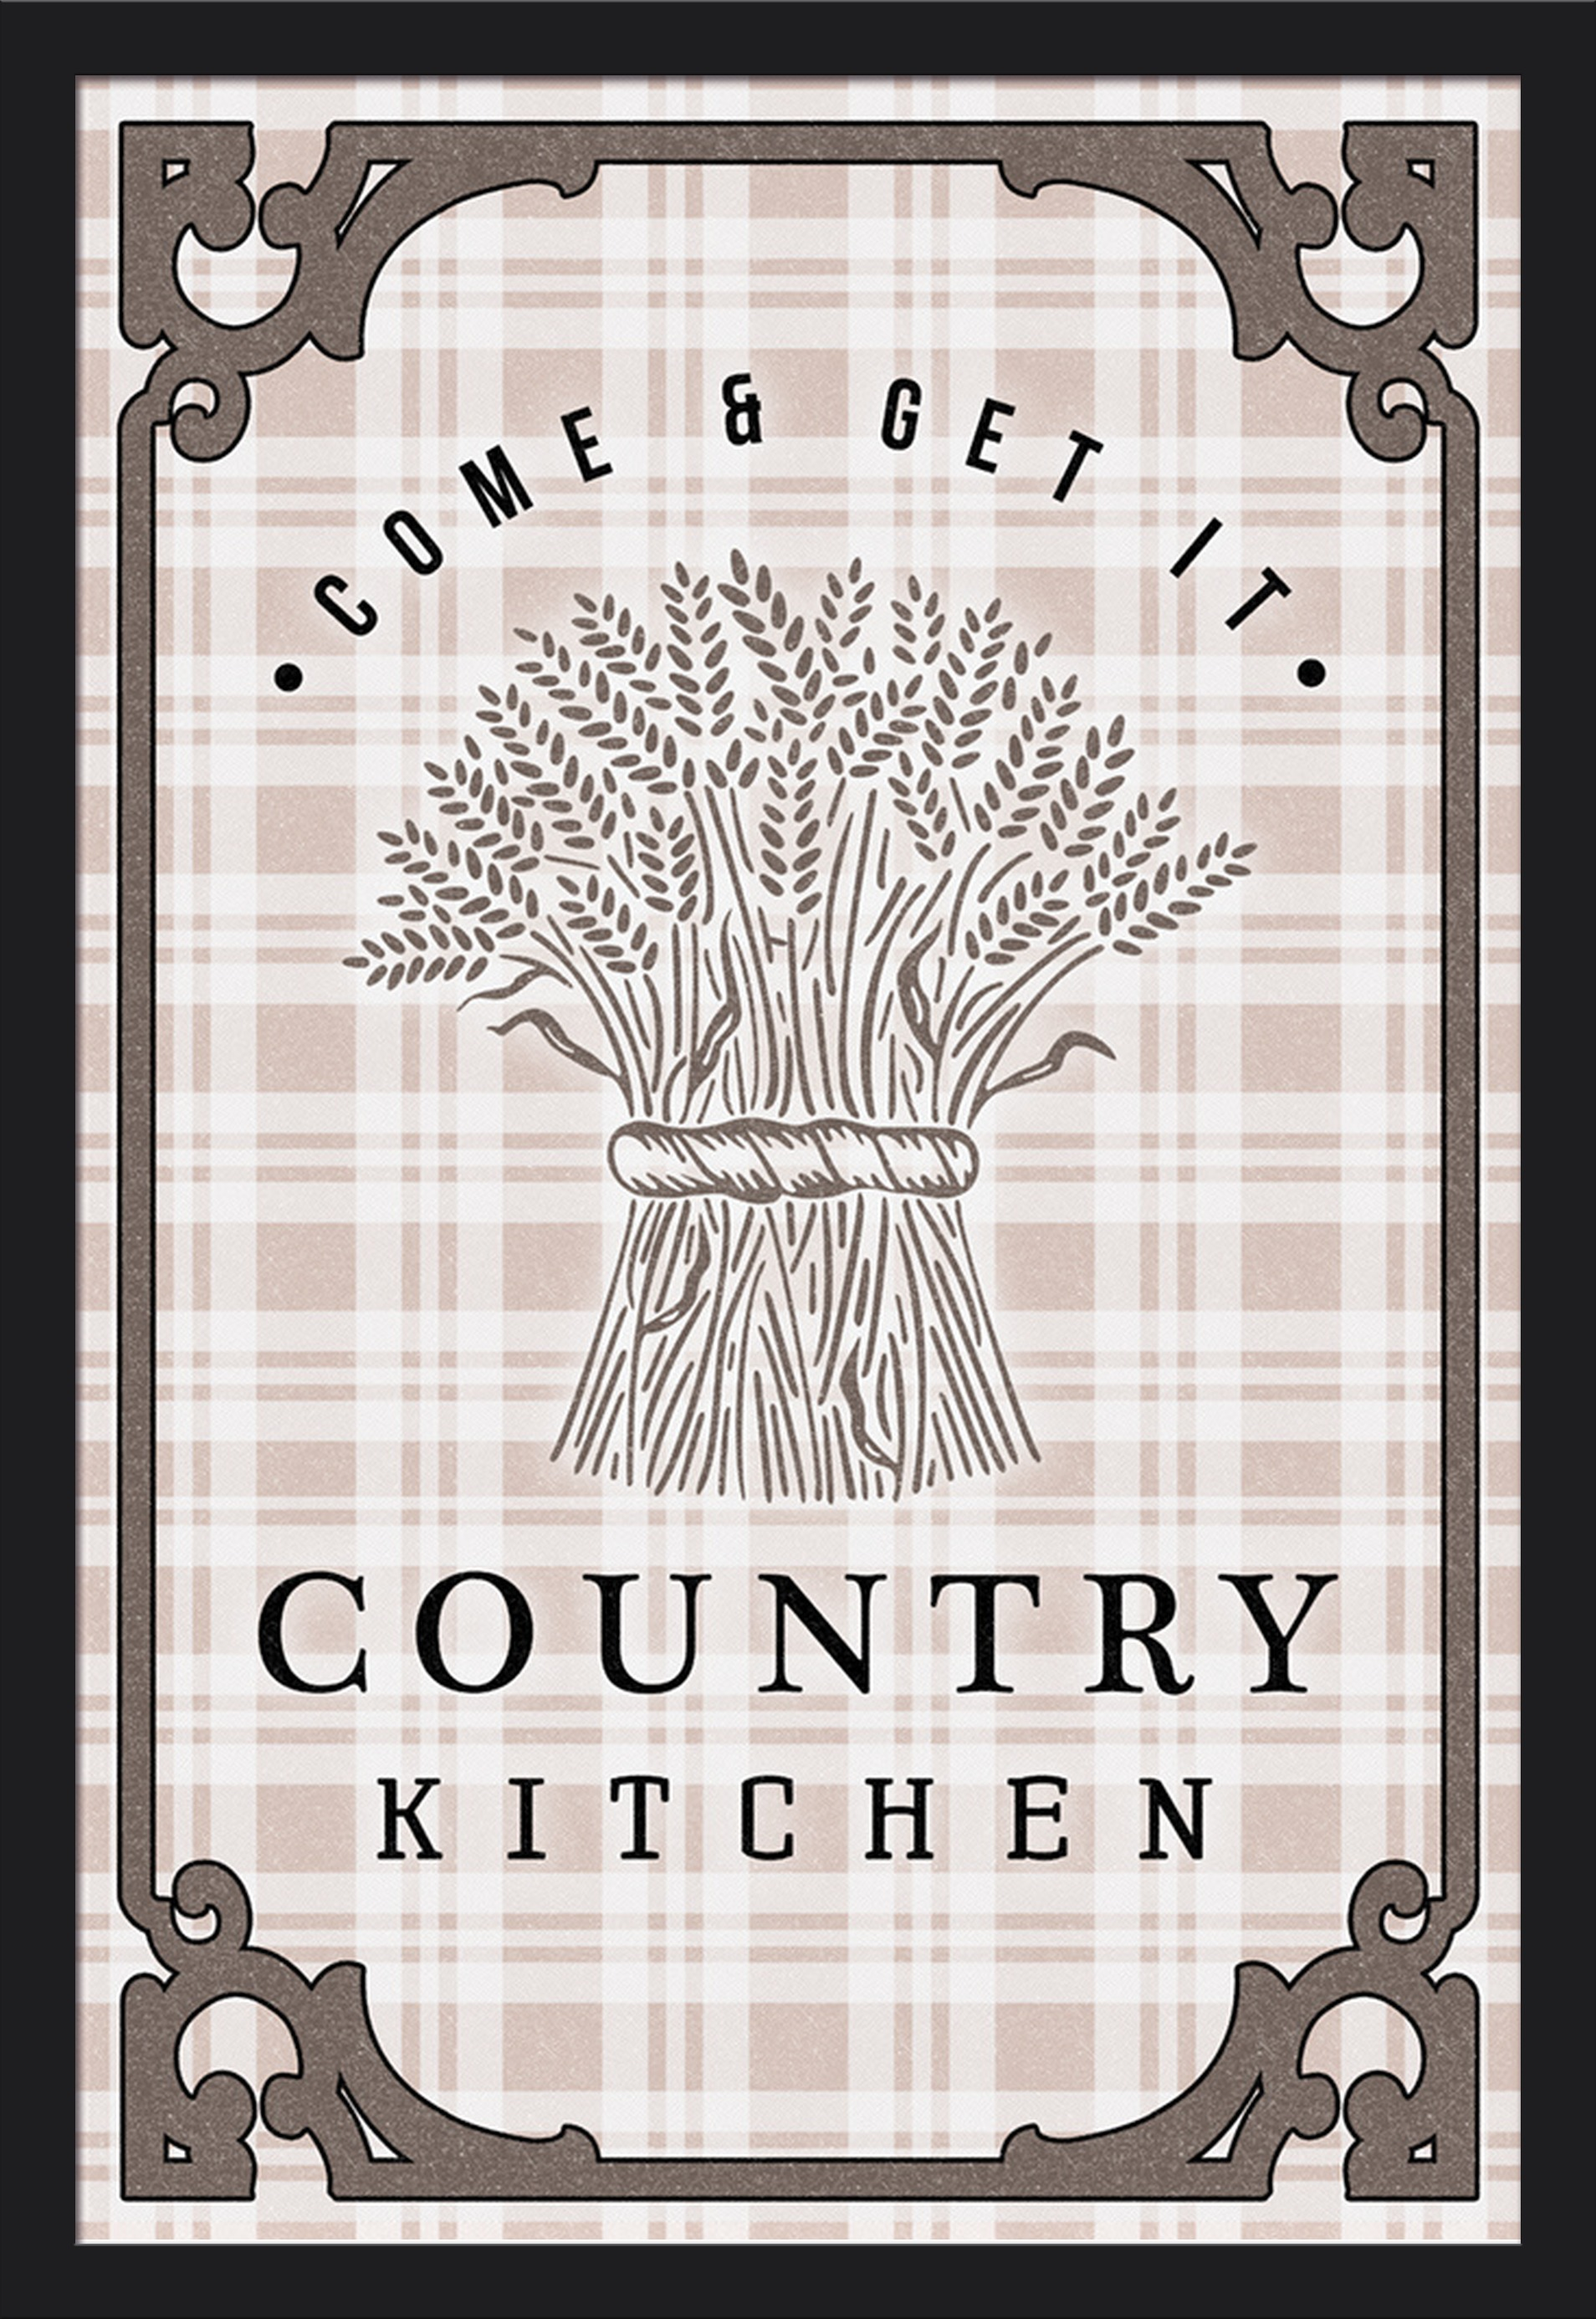 Country Kitchen Chicken on White 16x24 Giclee Art Print, Gallery Framed, Black Wood